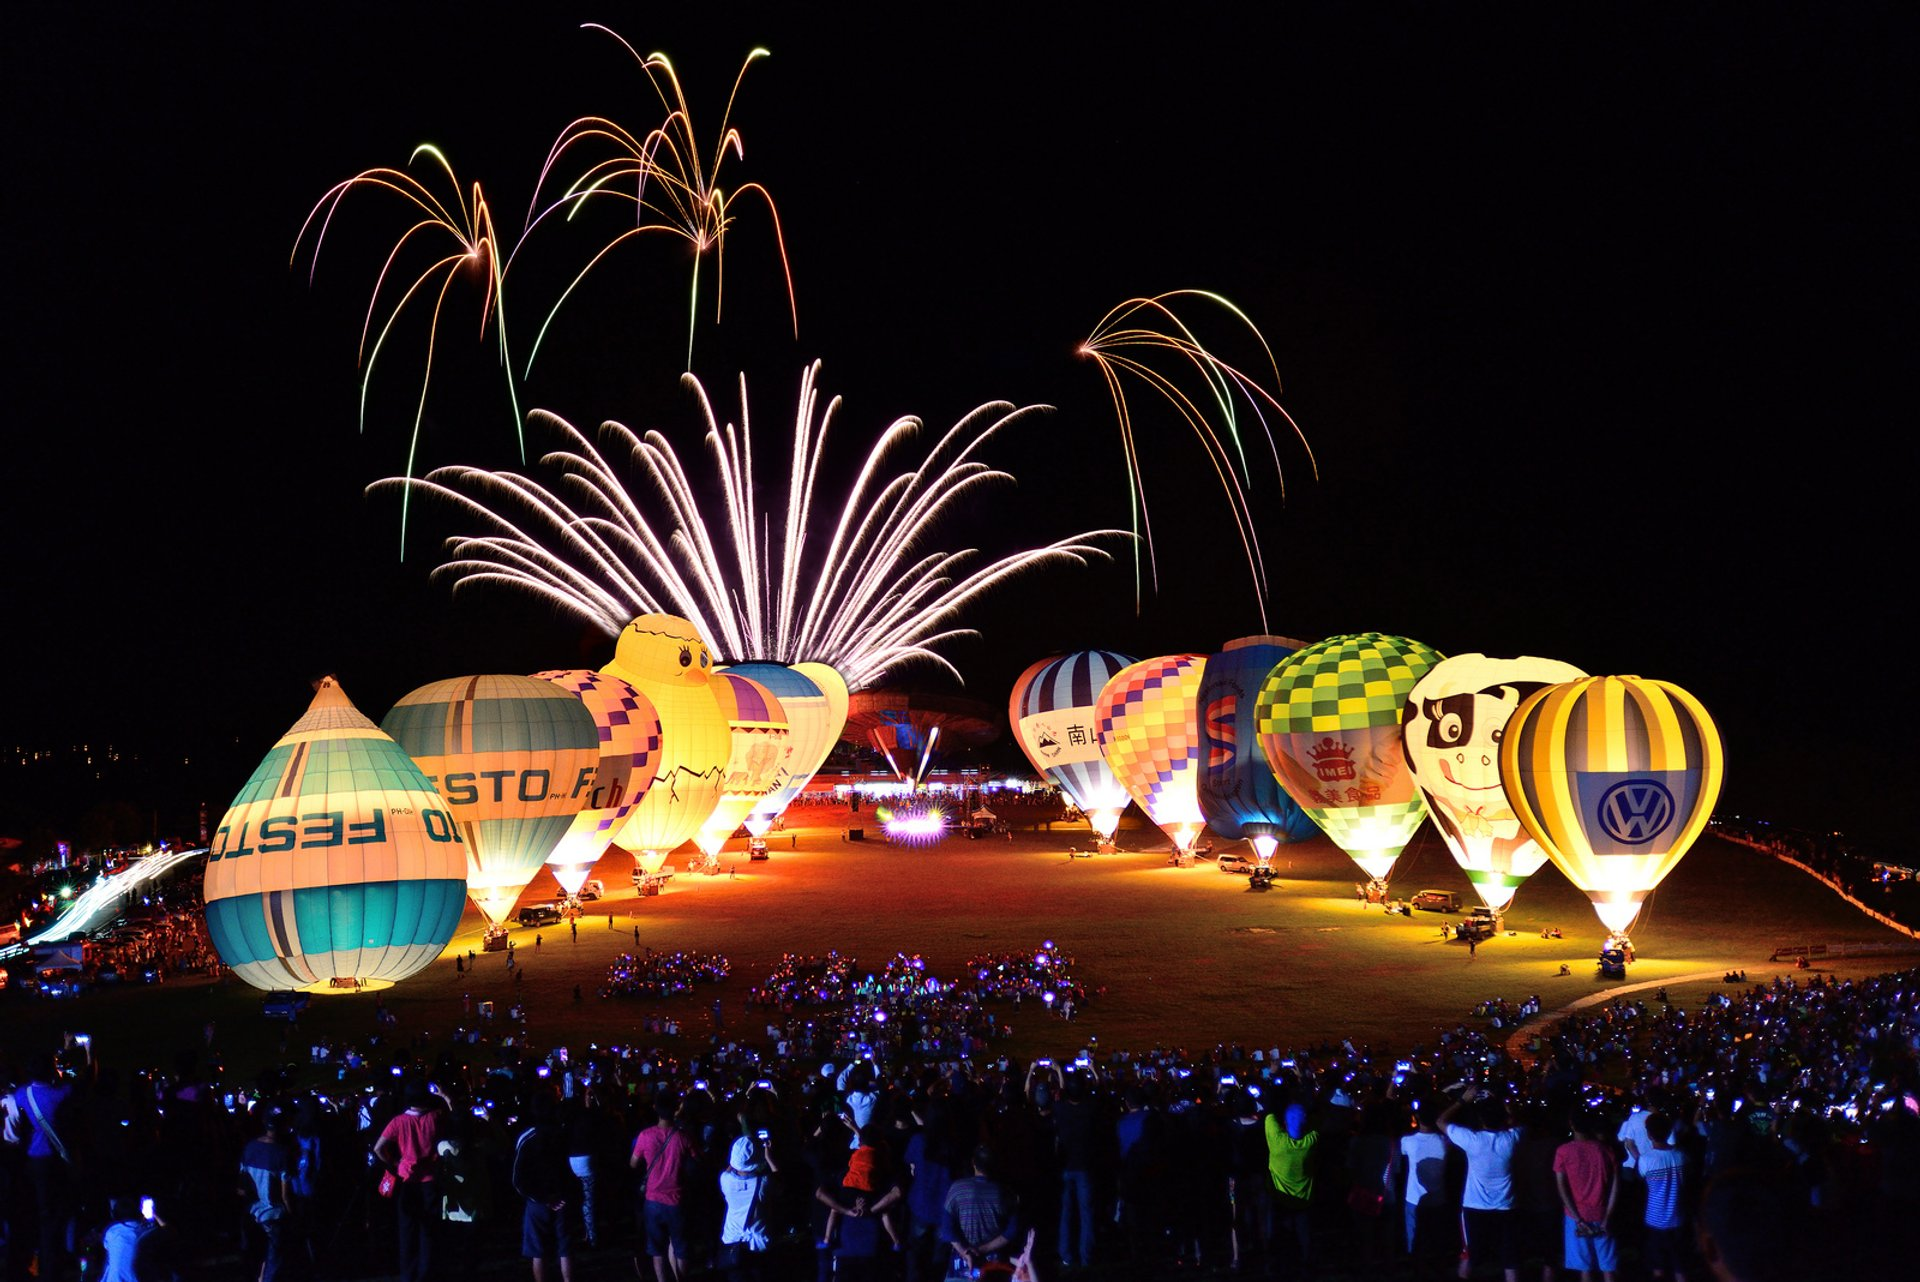 Best time for Taiwan Balloon Festival in Taiwan